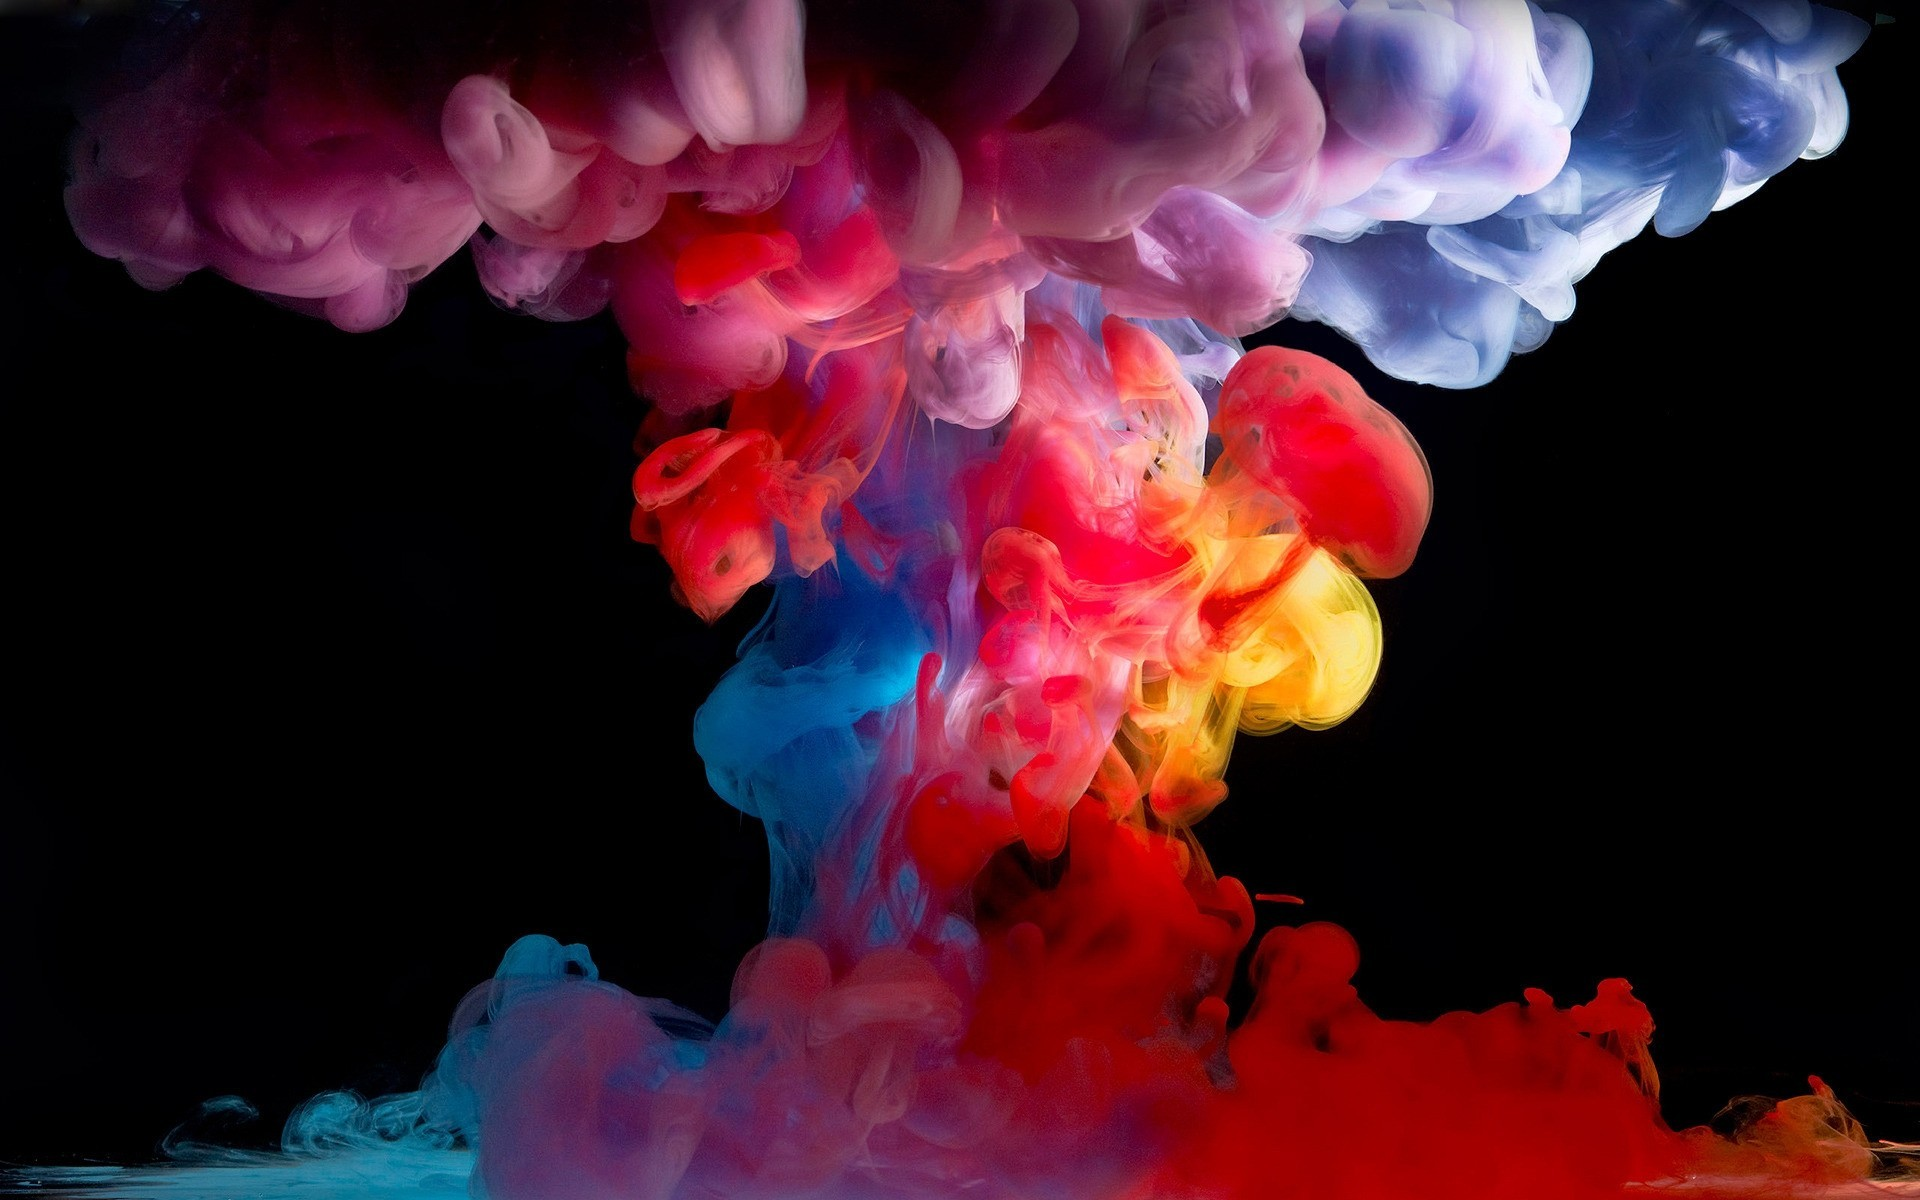 Abstract color bright art nature HD wallpaper. Android wallpapers for free.